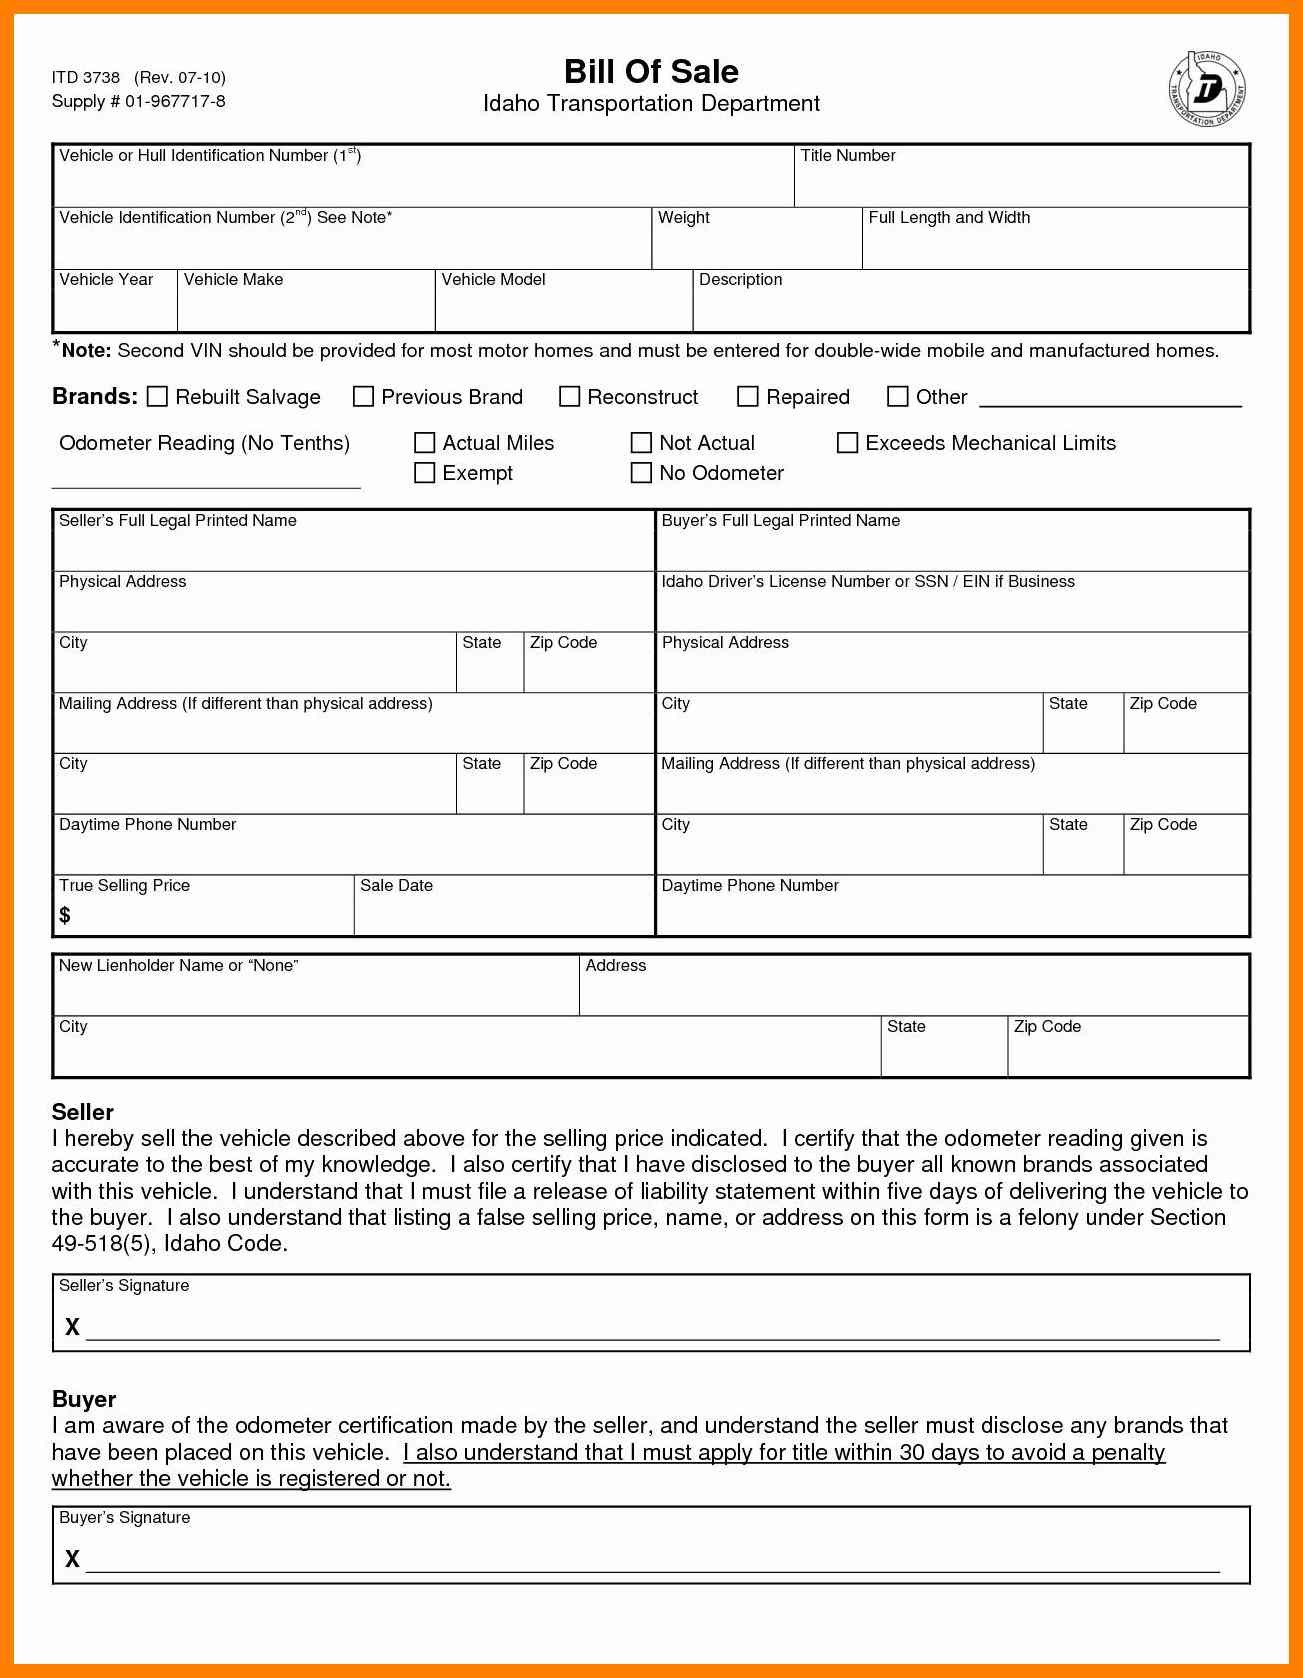 Bill Of Sale Form Dmvtemplate For Bill Of Sale For Boat